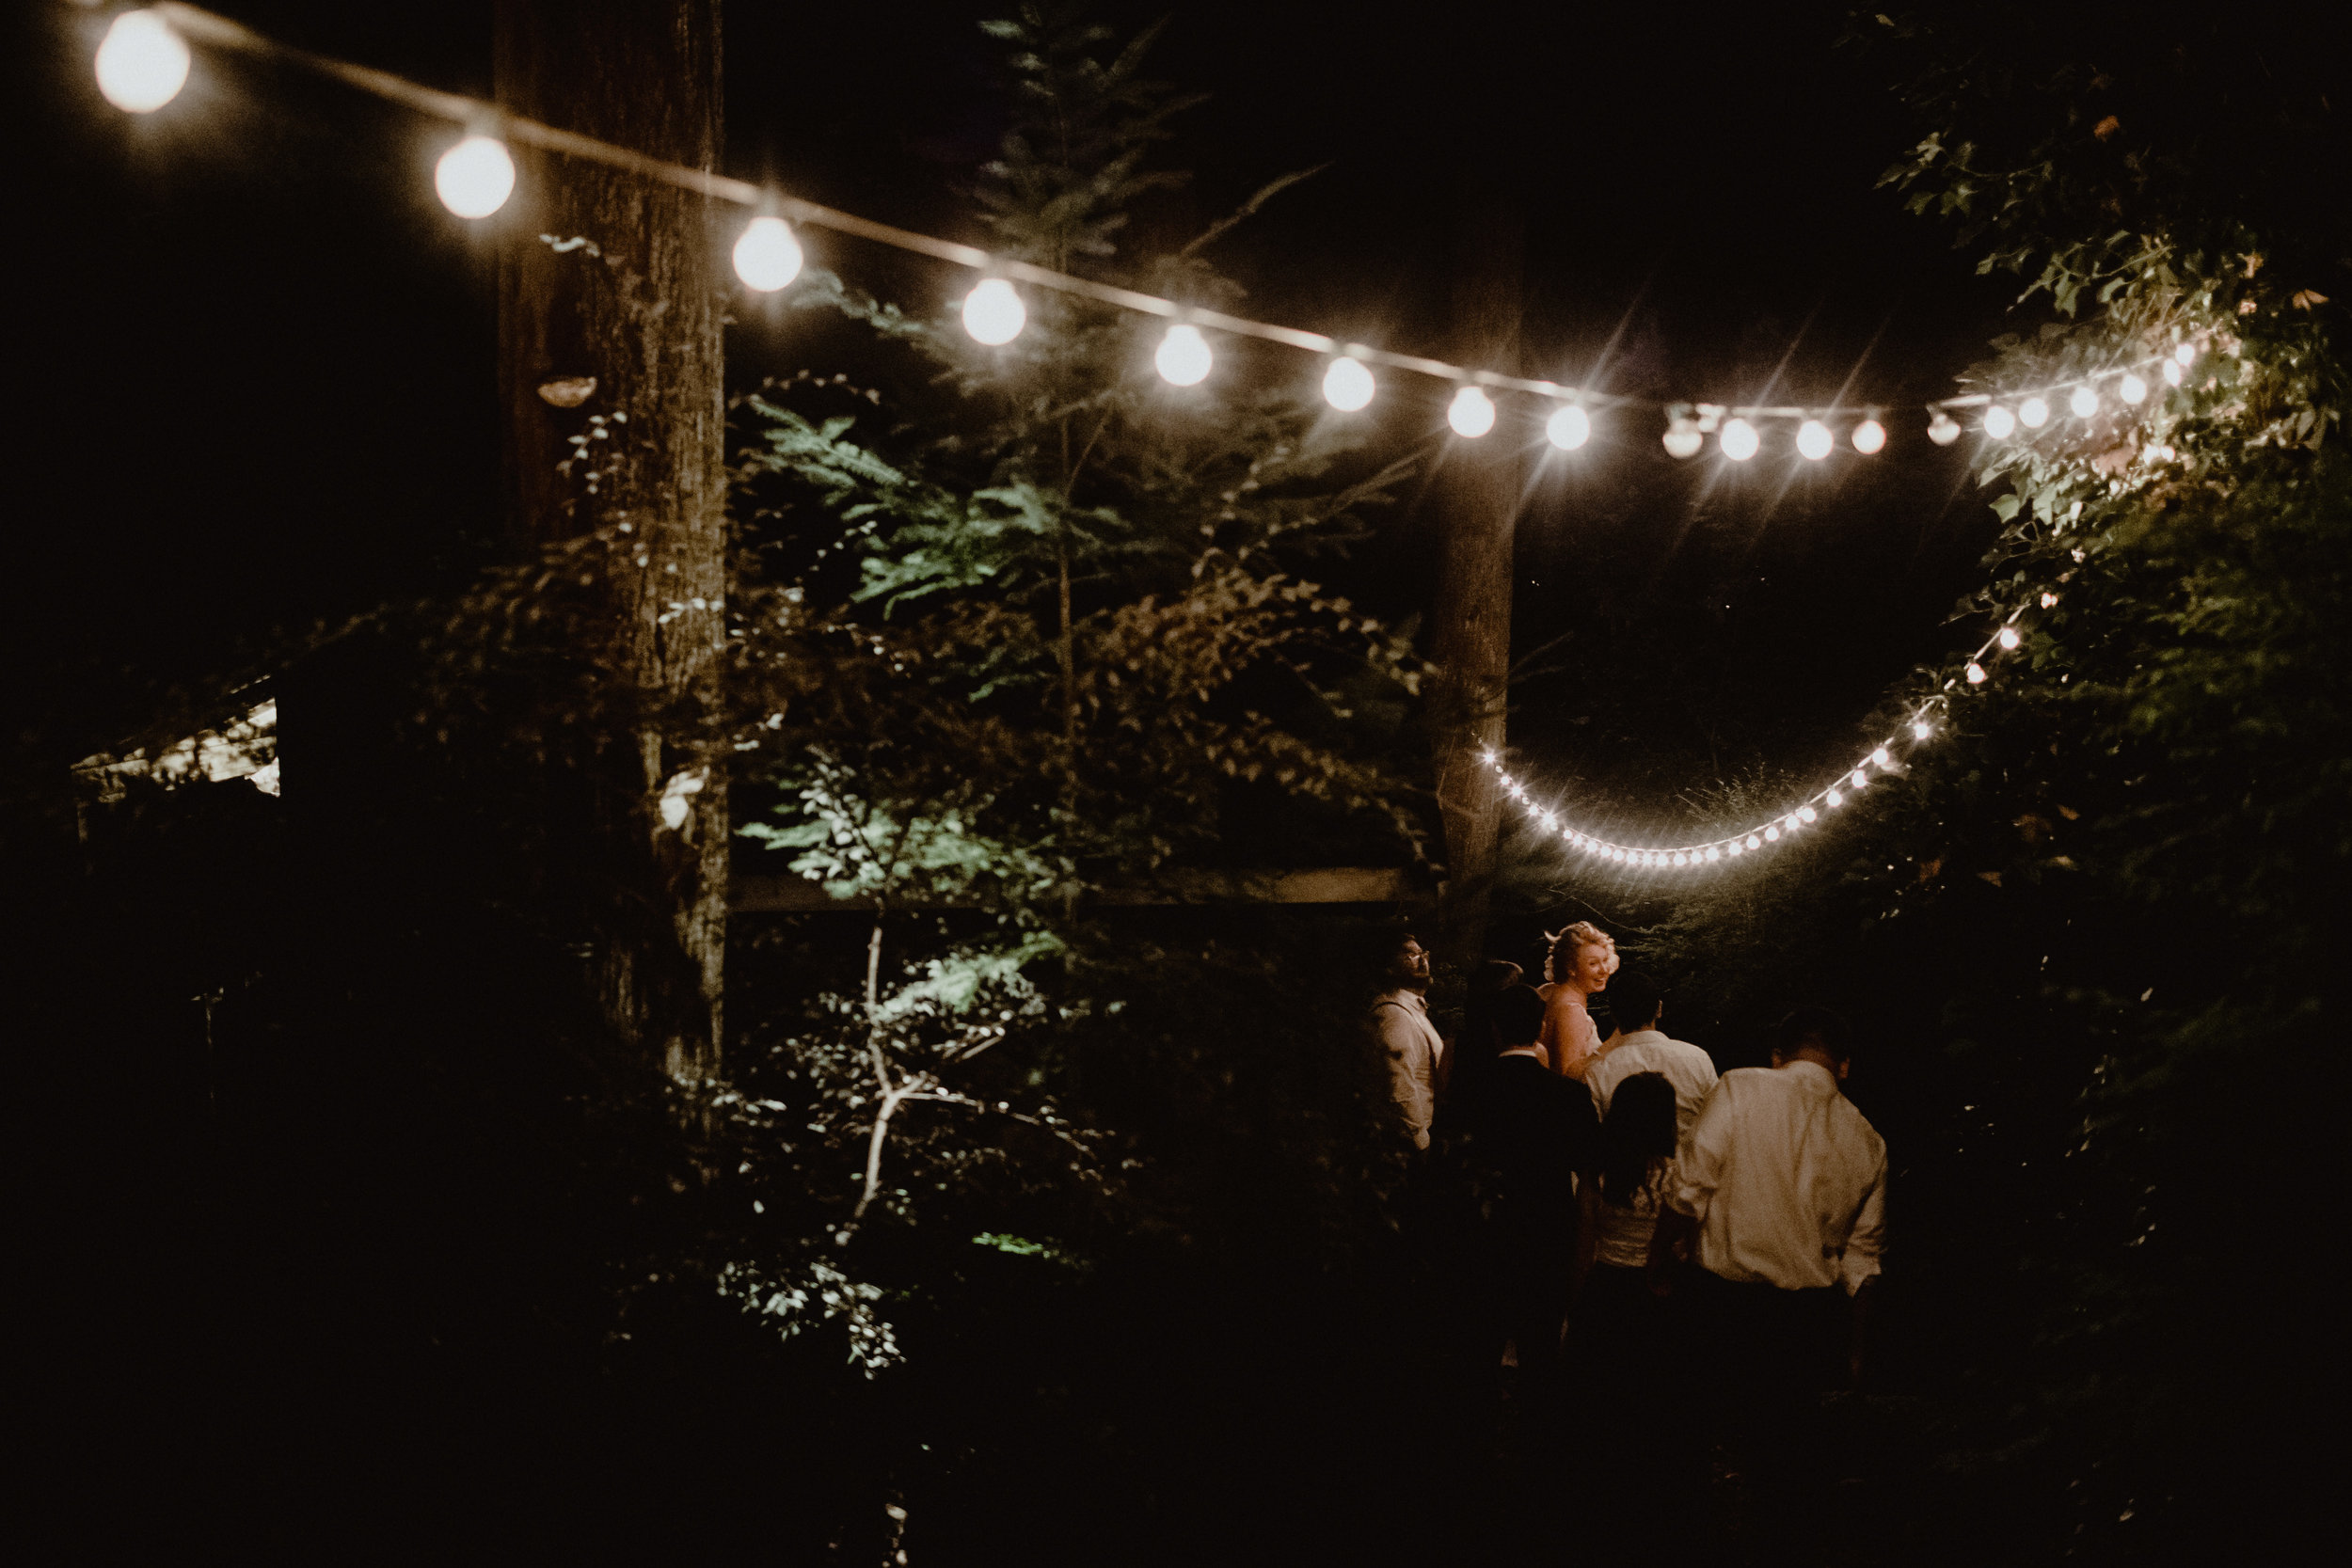 west-vancouver-backyard-wedding-333.jpg